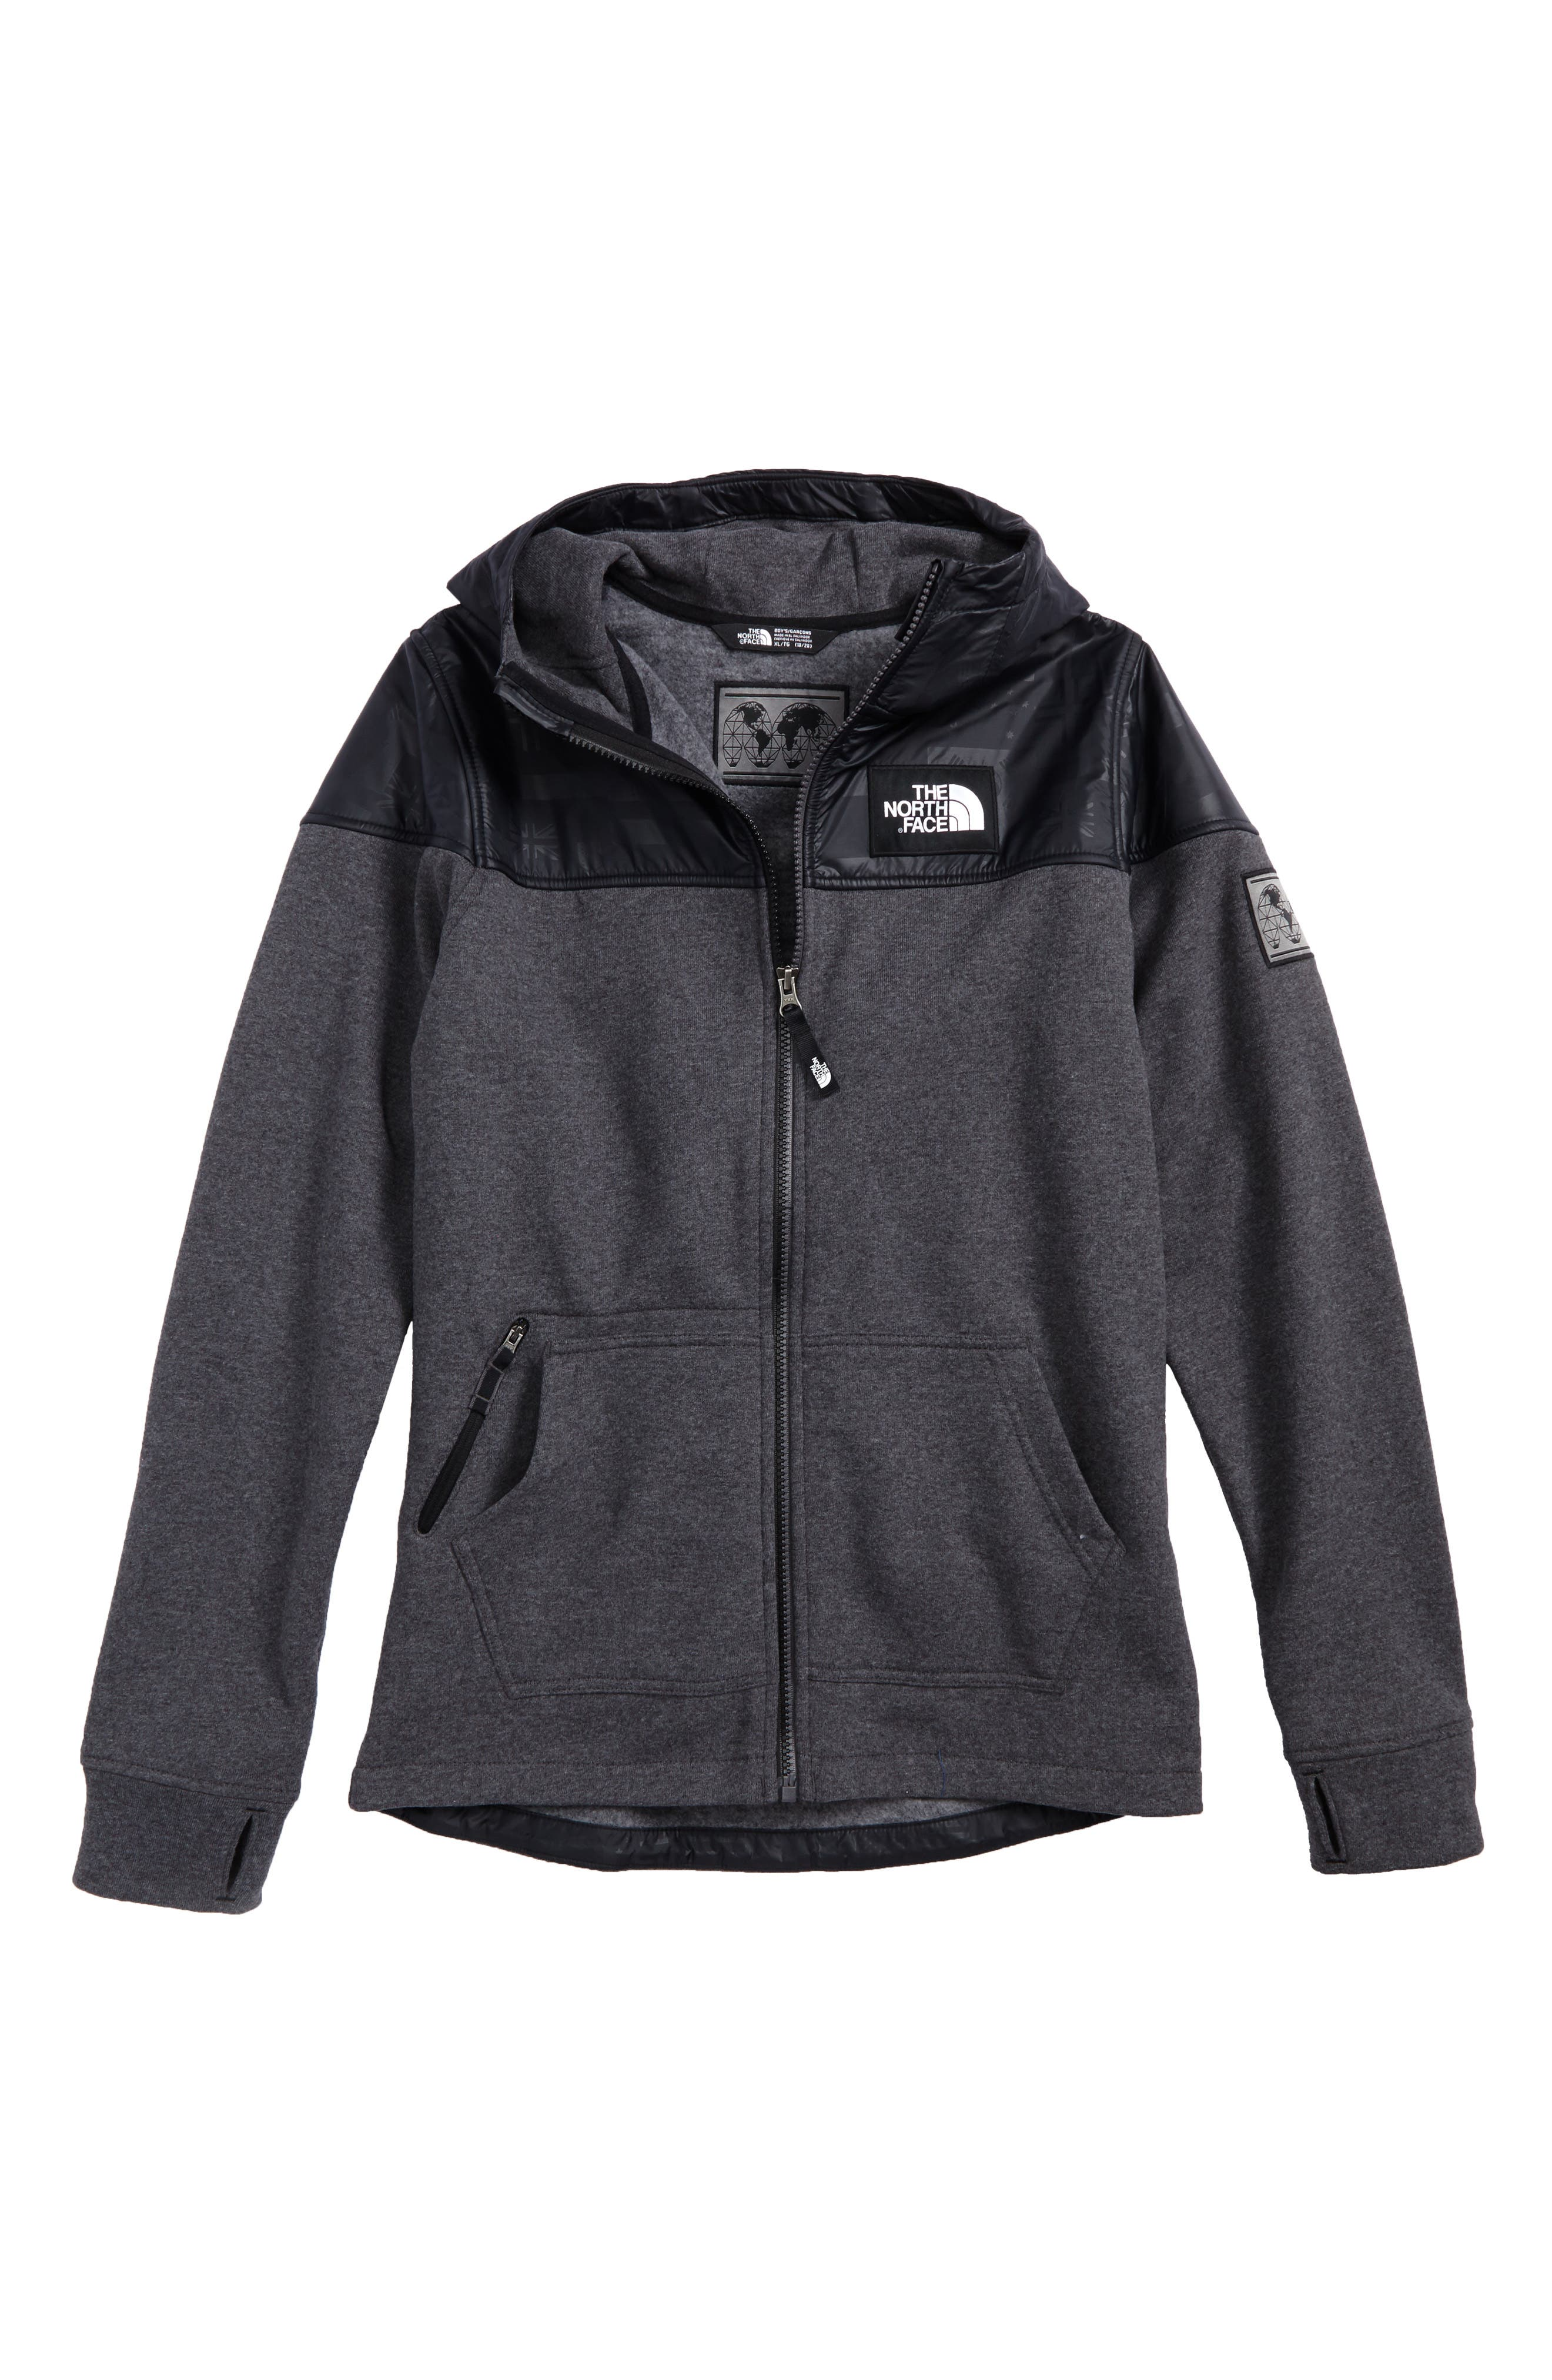 International Collection Zip Hoodie,                             Main thumbnail 1, color,                             021